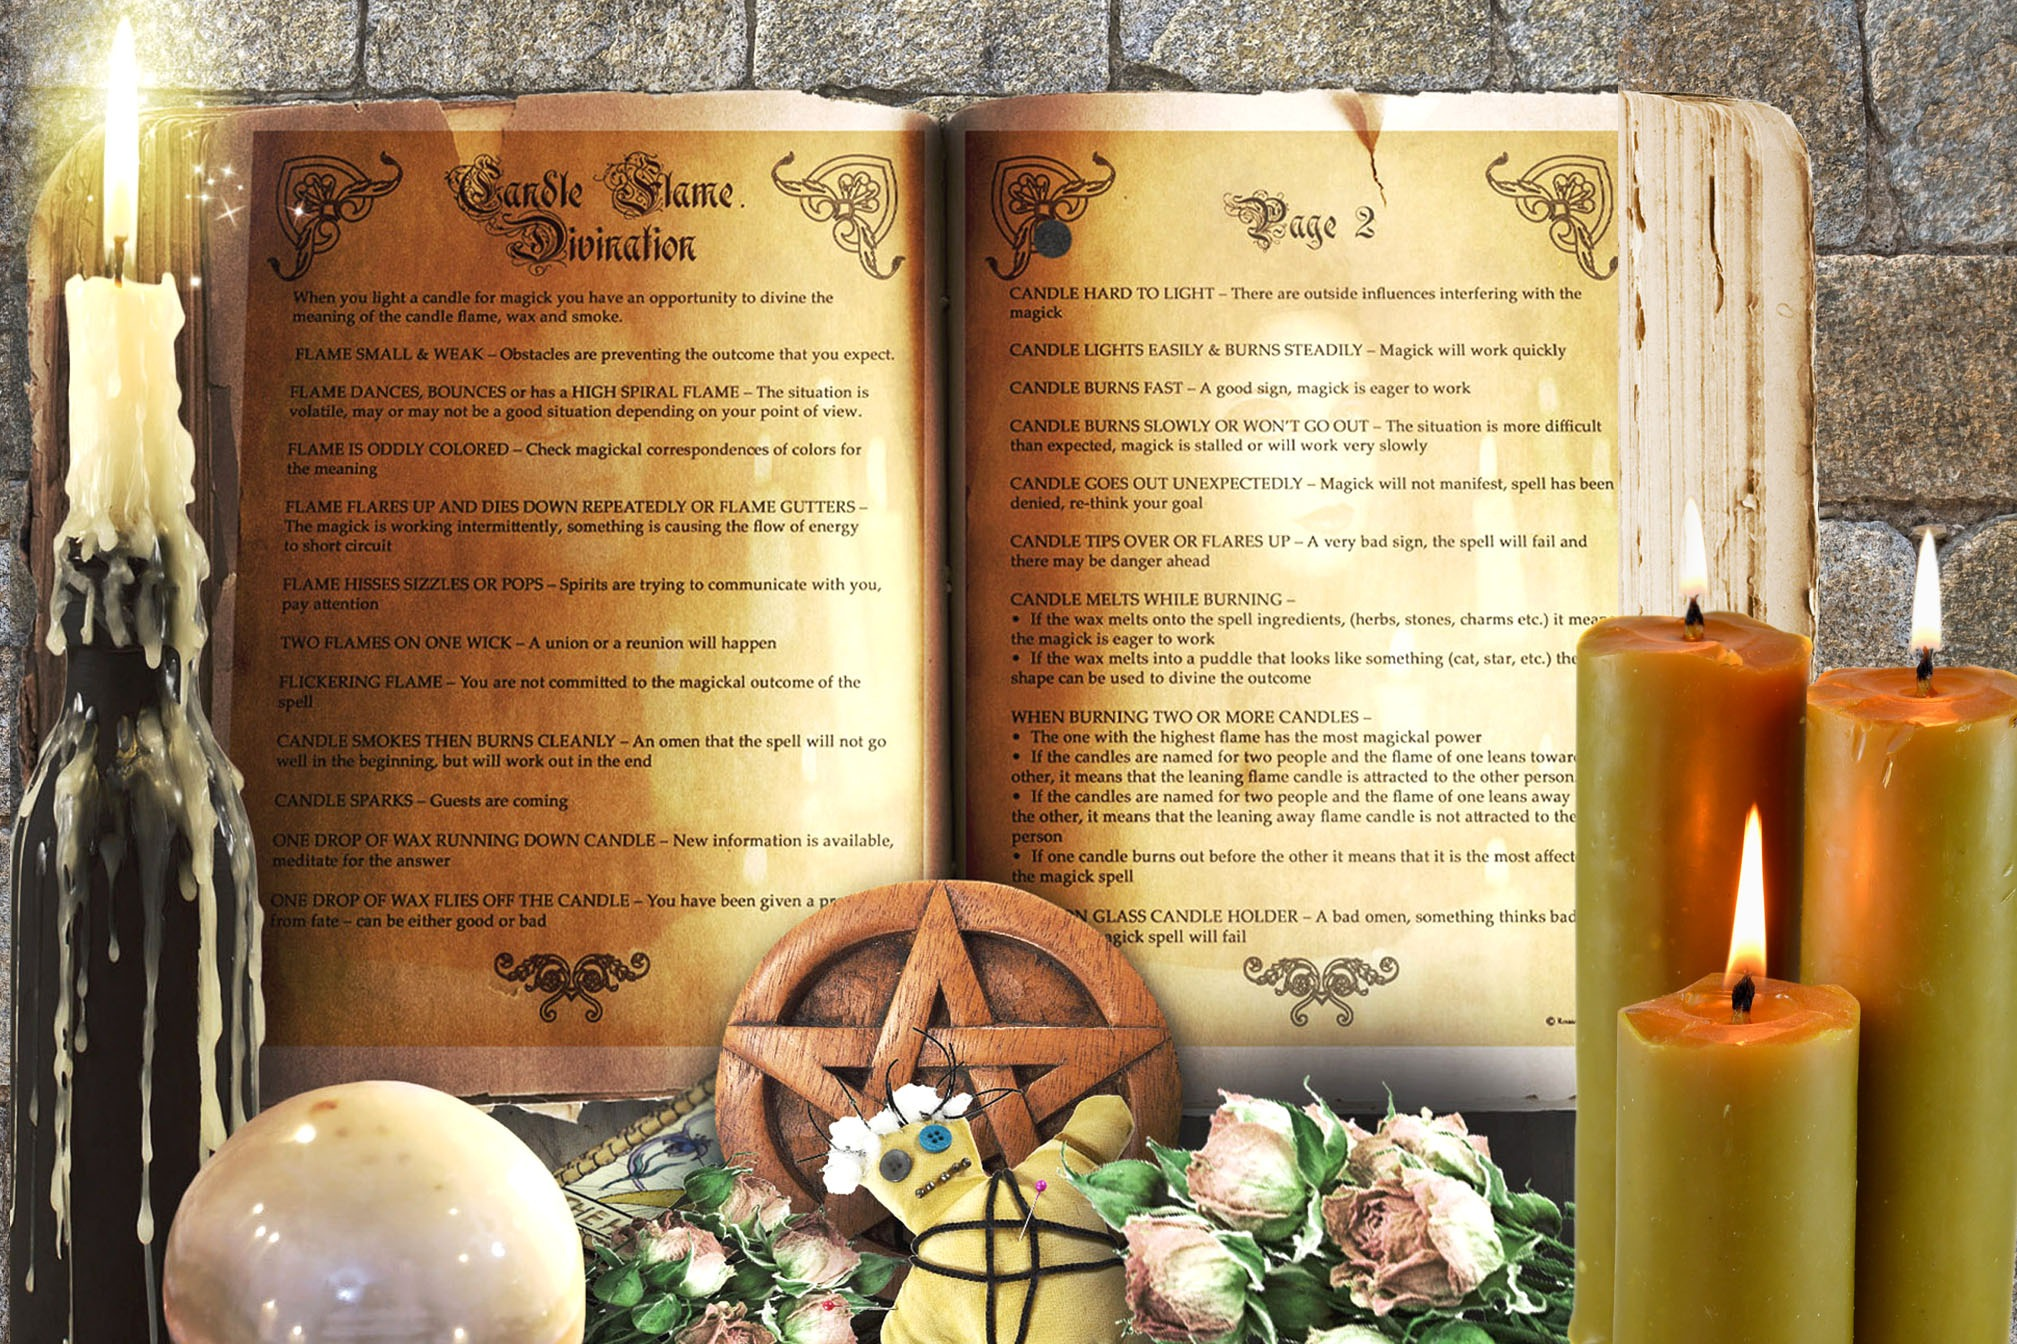 CANDLE FLAME DIVINATION 2 Pages